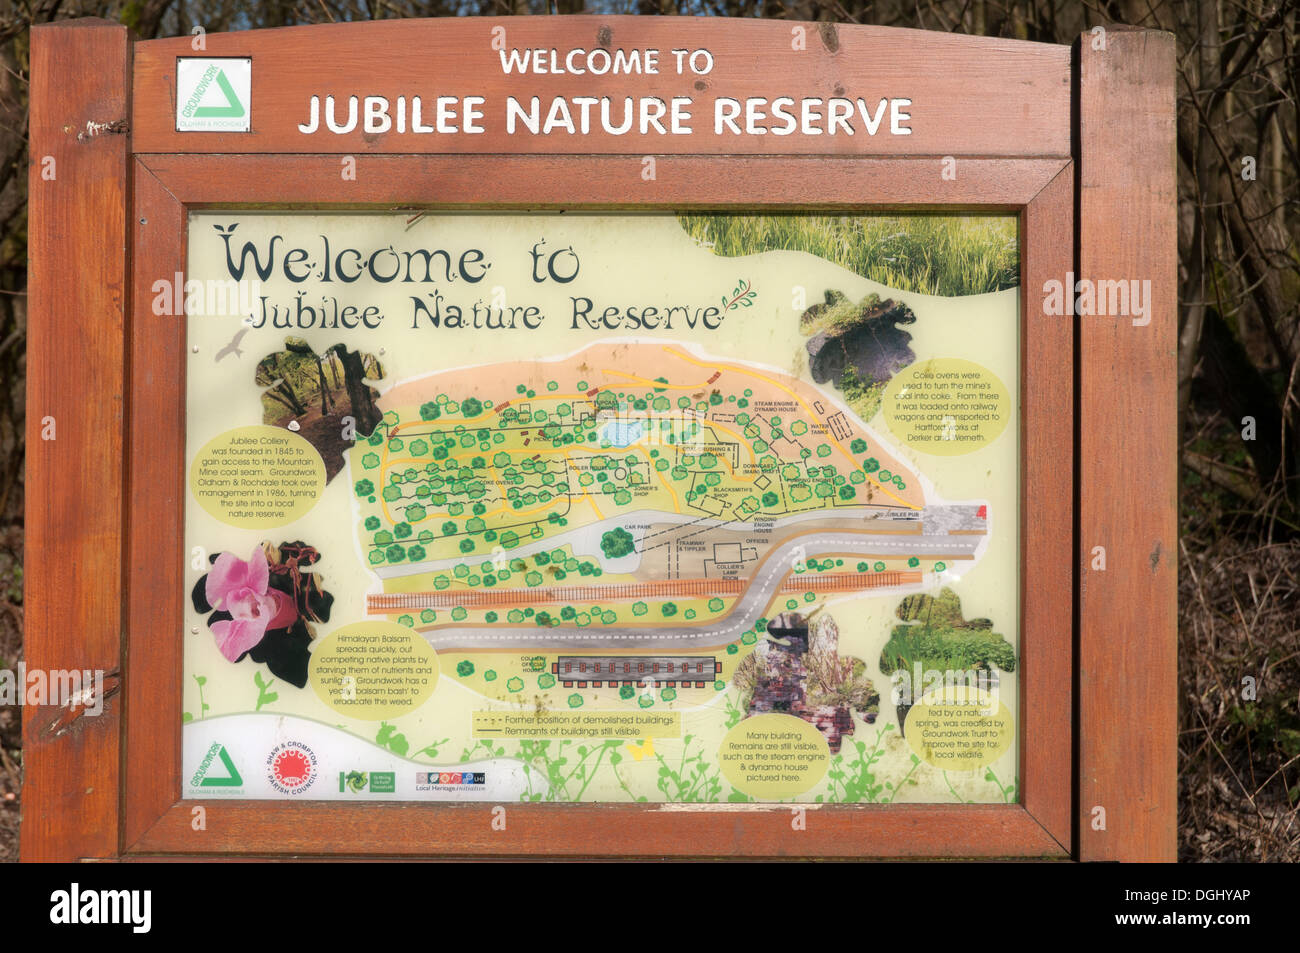 Sign at the Jubilee Nature Reserve in the Beal valley near Shaw, Oldham, Greater Manchester, England, UK - Stock Image